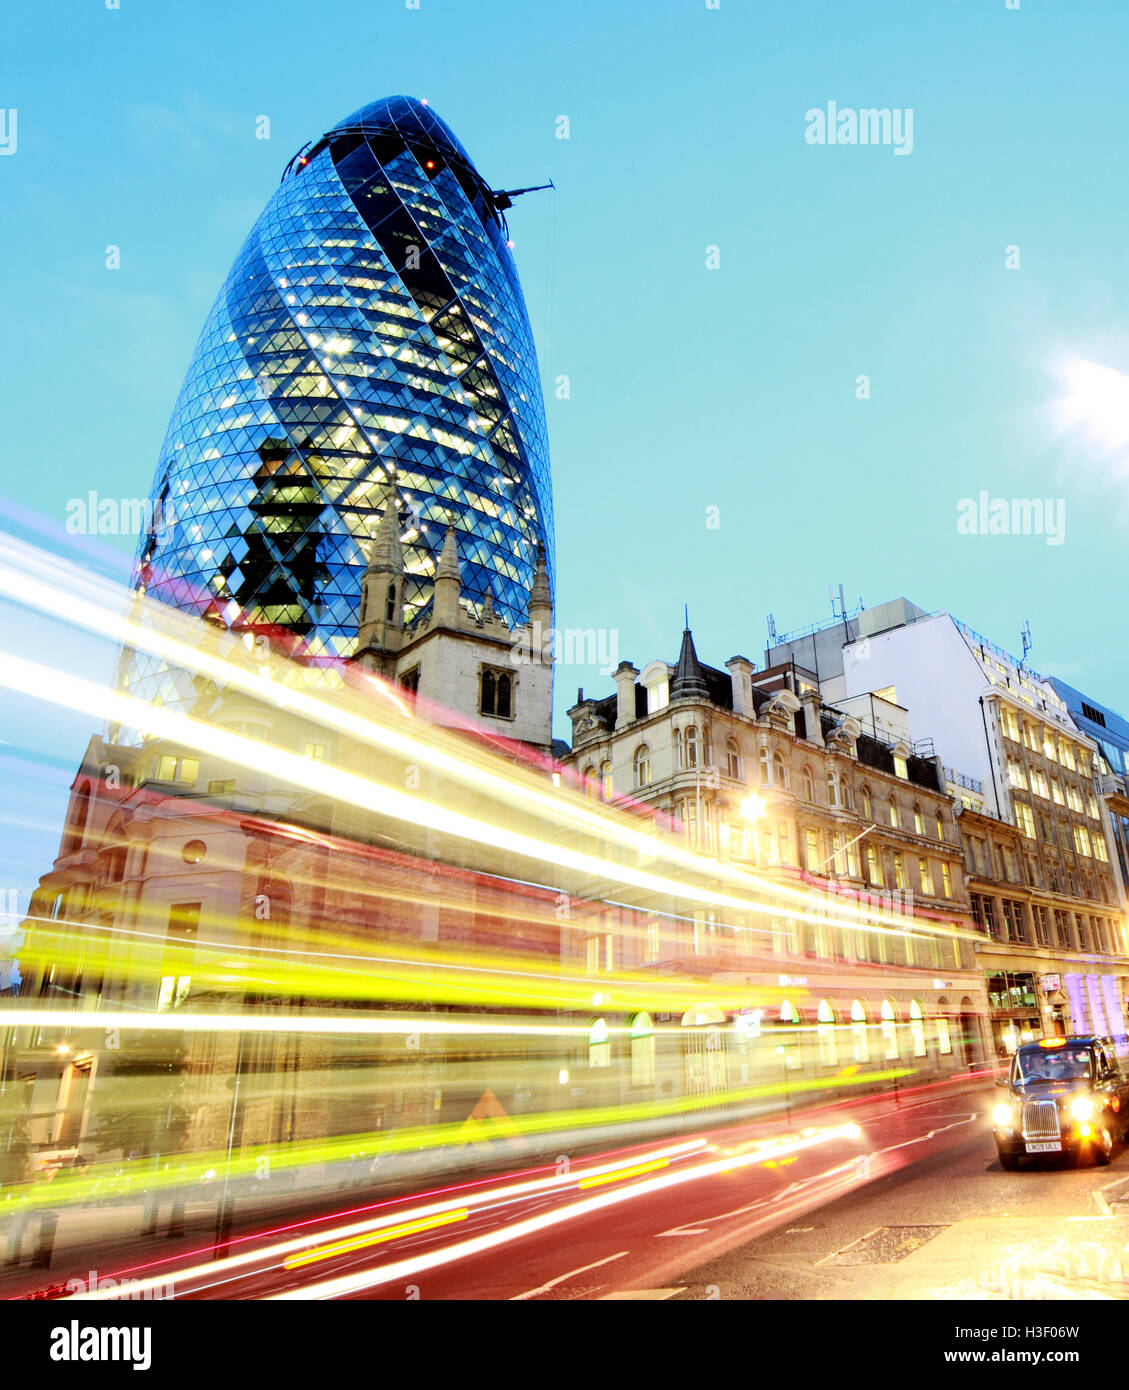 Red London bus passes 30 St Mary Axe,Gherkin,Swiss Re Building,City Of London,England at Dusk - Stock Image